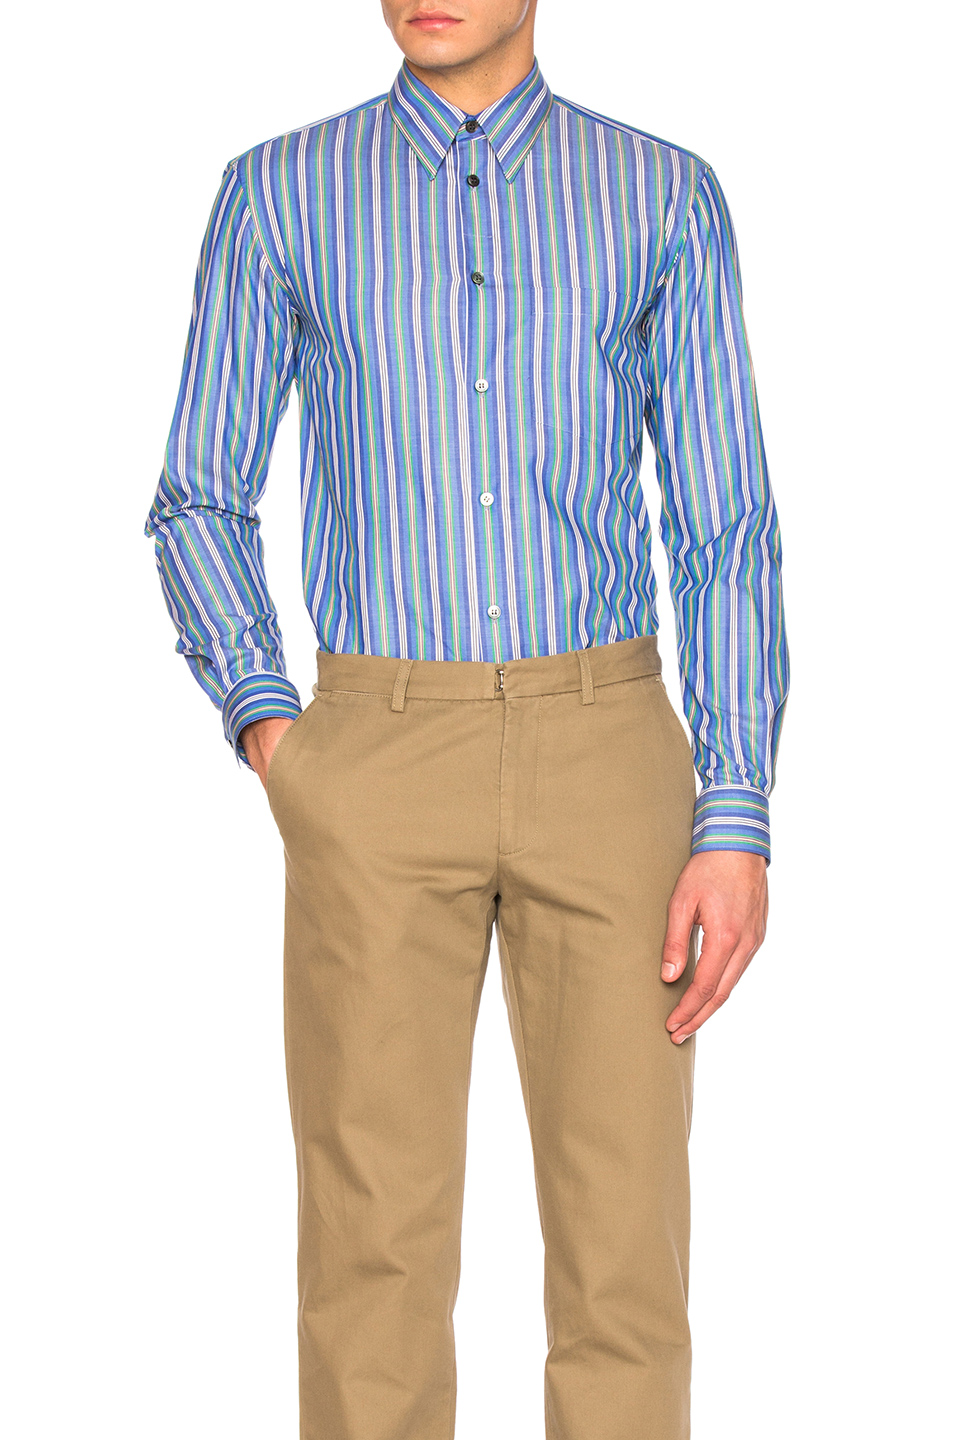 Stella McCartneyLong Sleeve Striped Shirt in Blue,Stripes